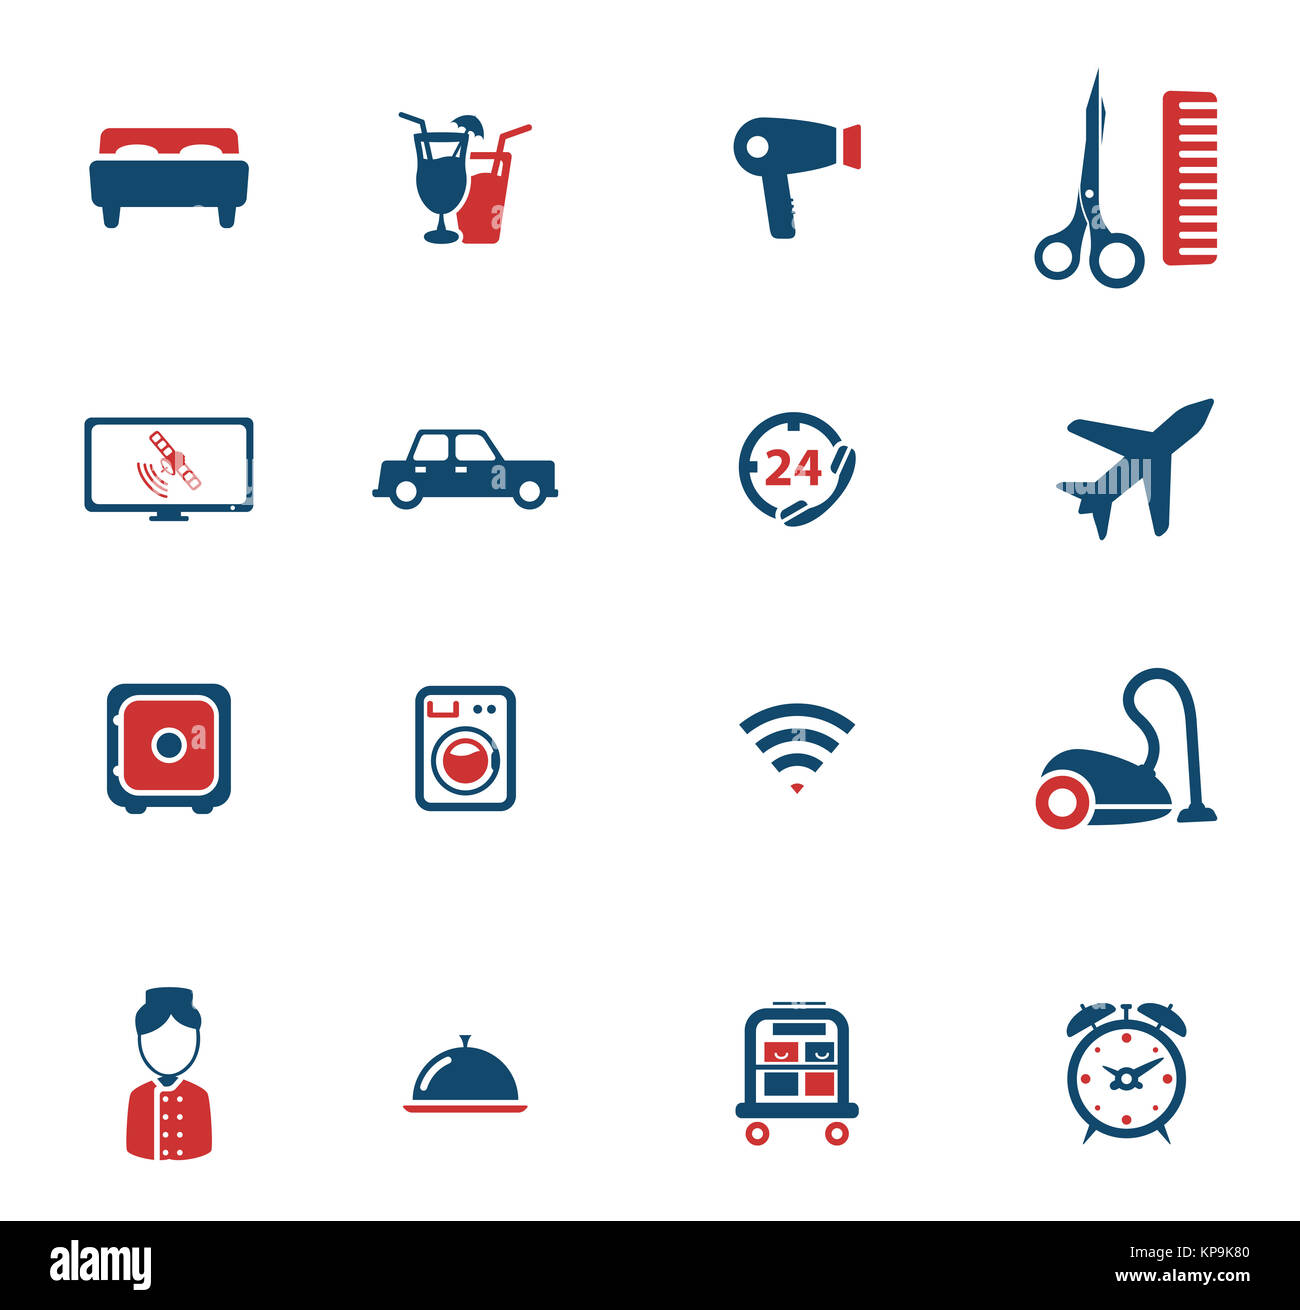 Hotel simply icons - Stock Image